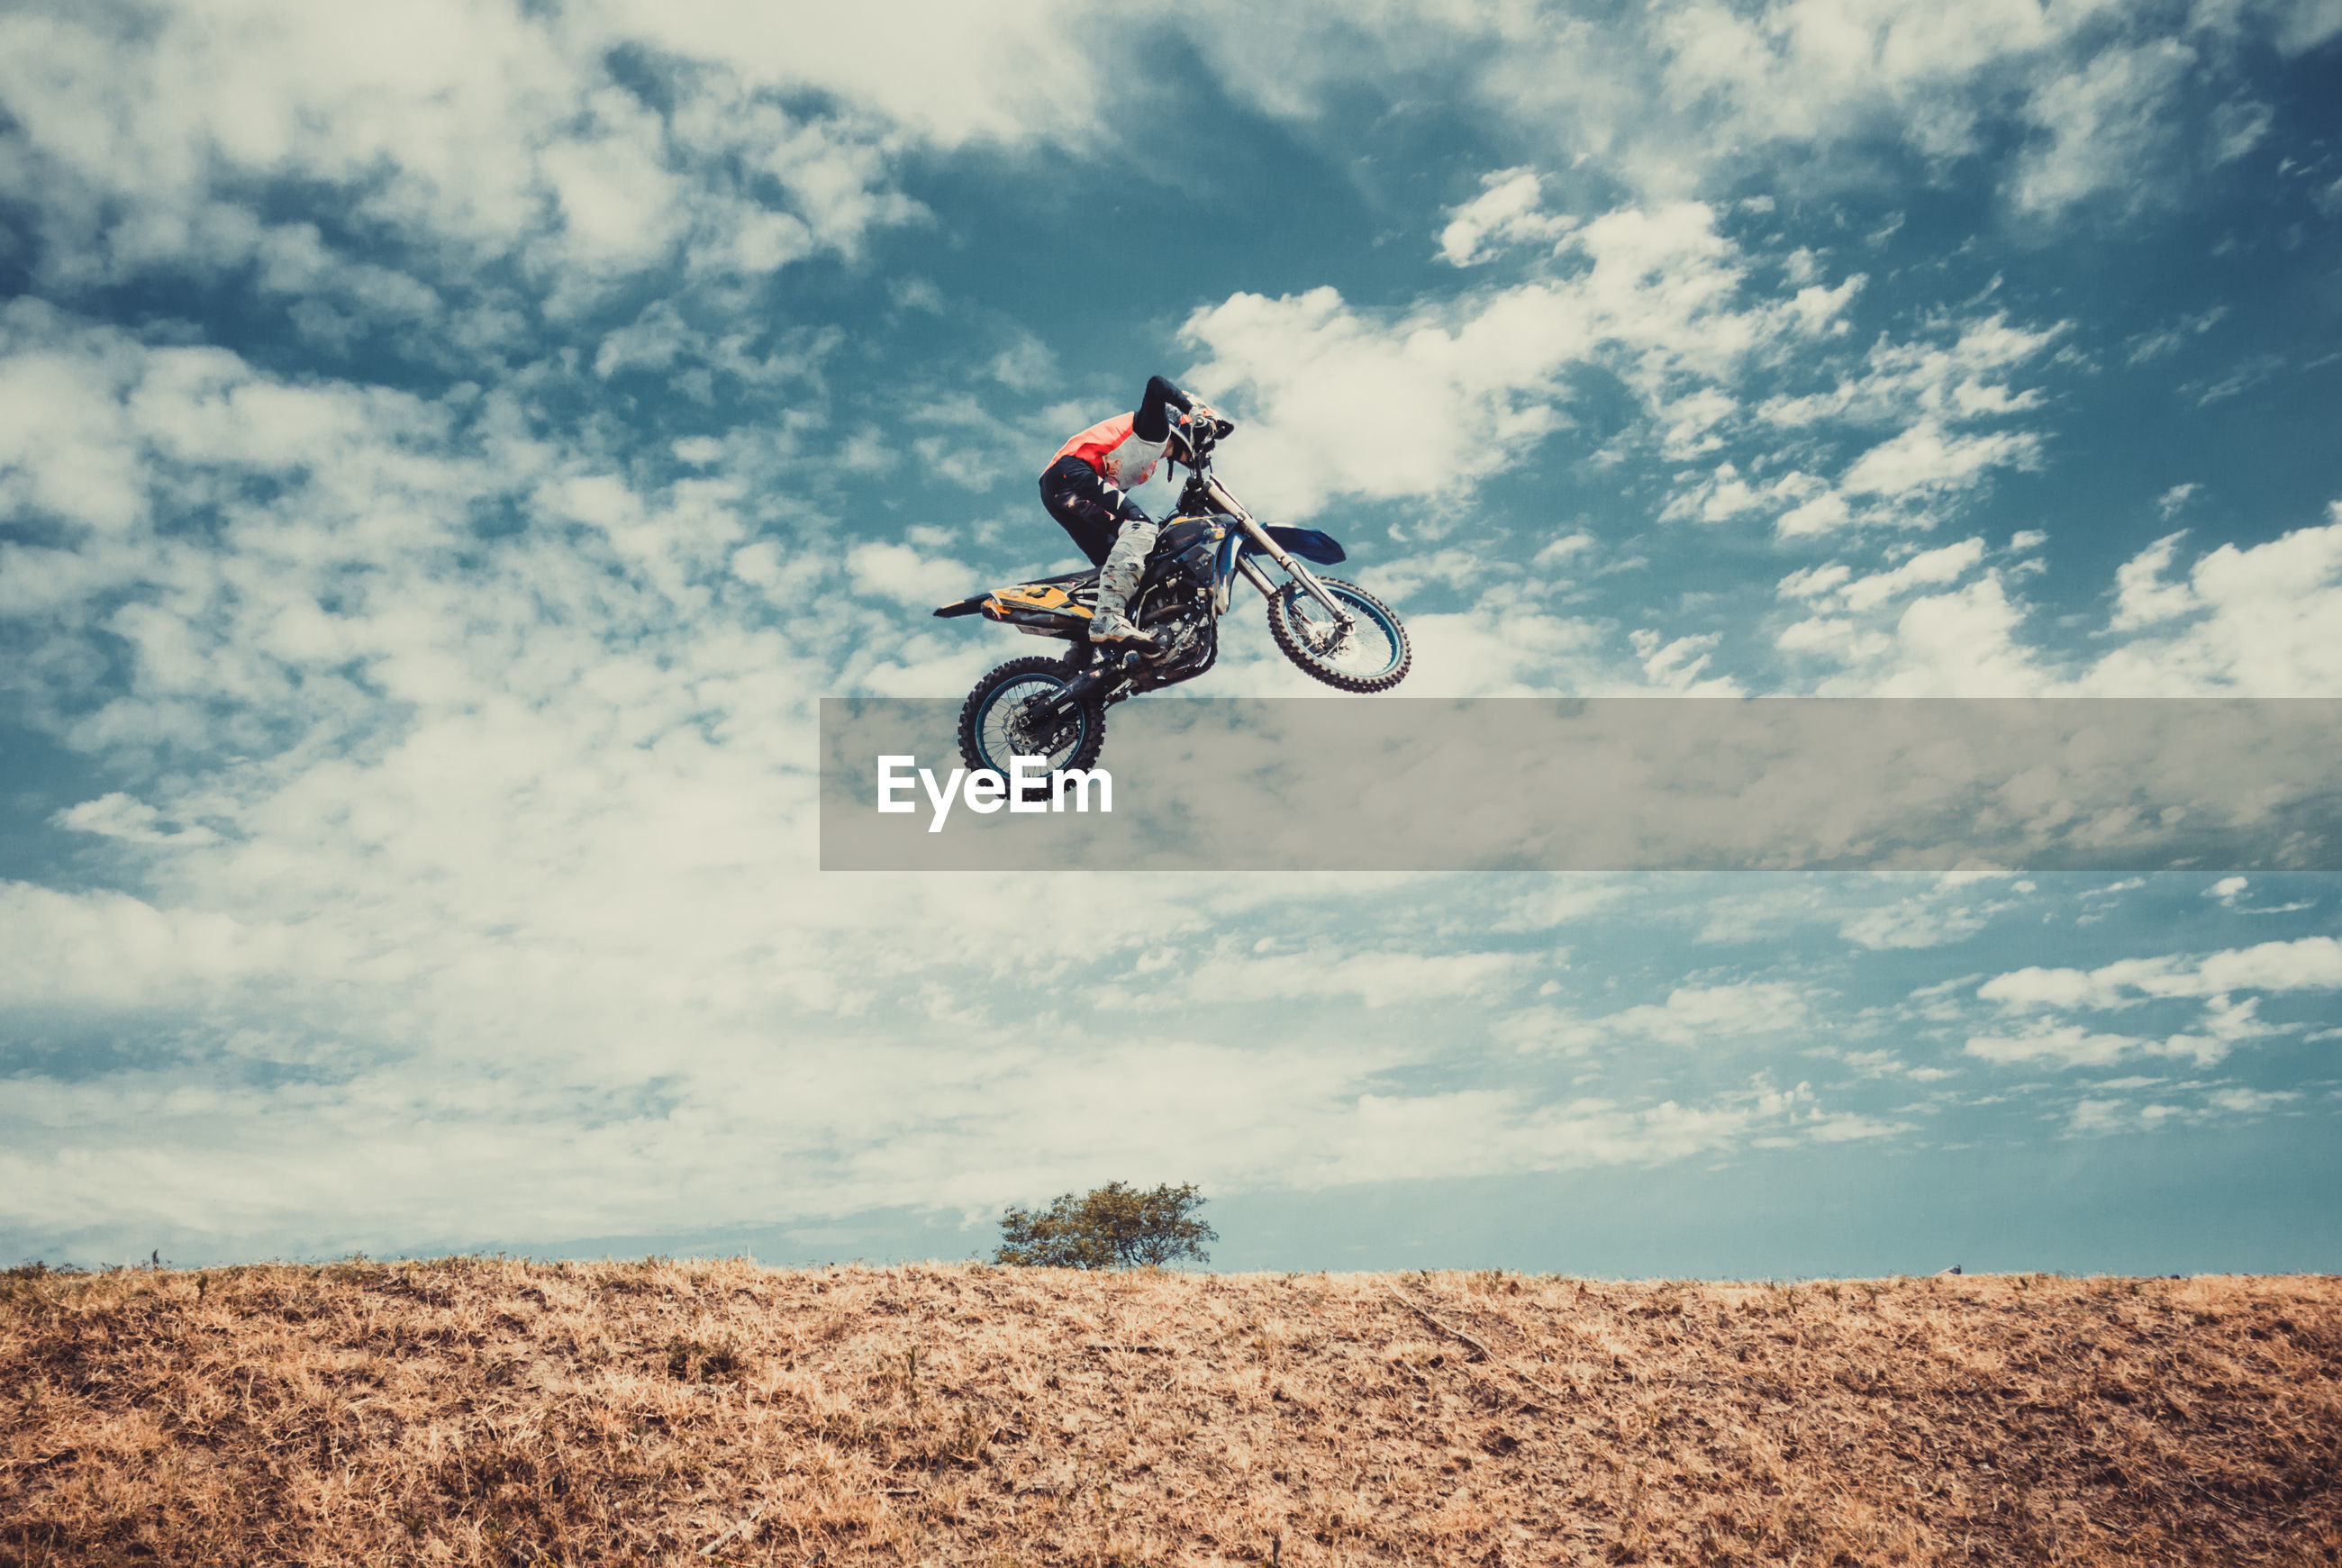 Low angle view of man jumping while riding motorcycle against sky